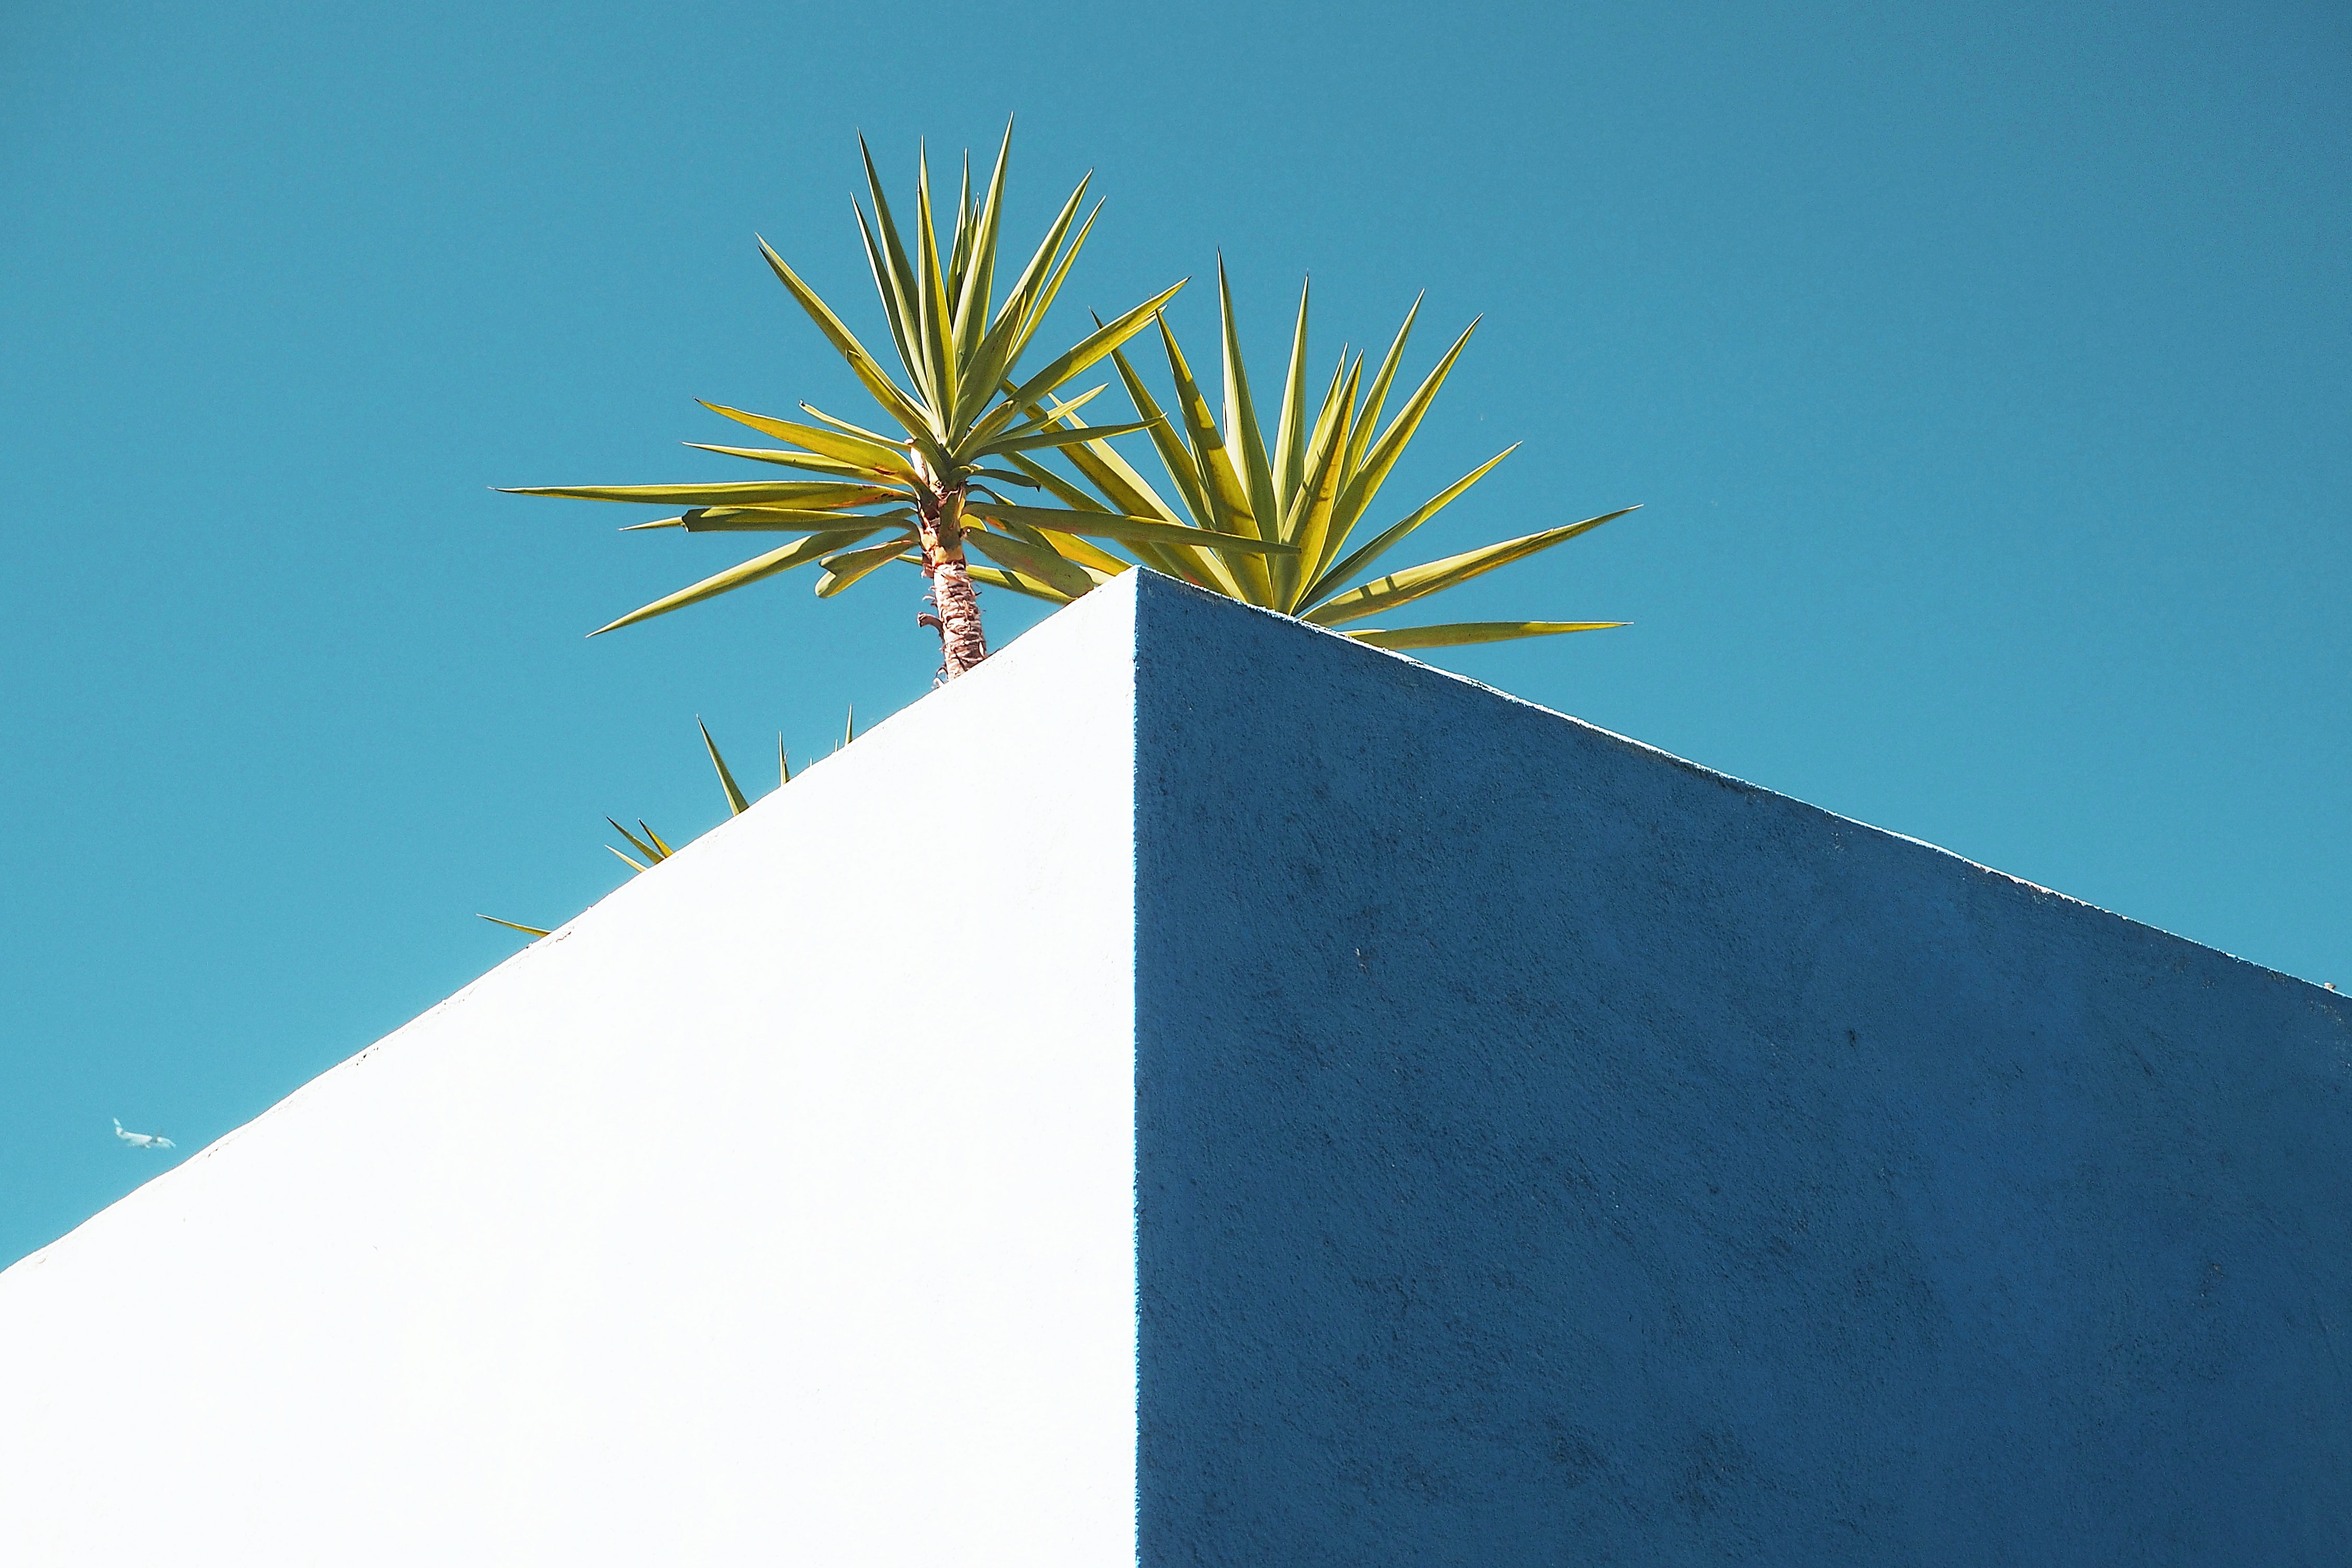 Small palm trees on the edge of a white building roof